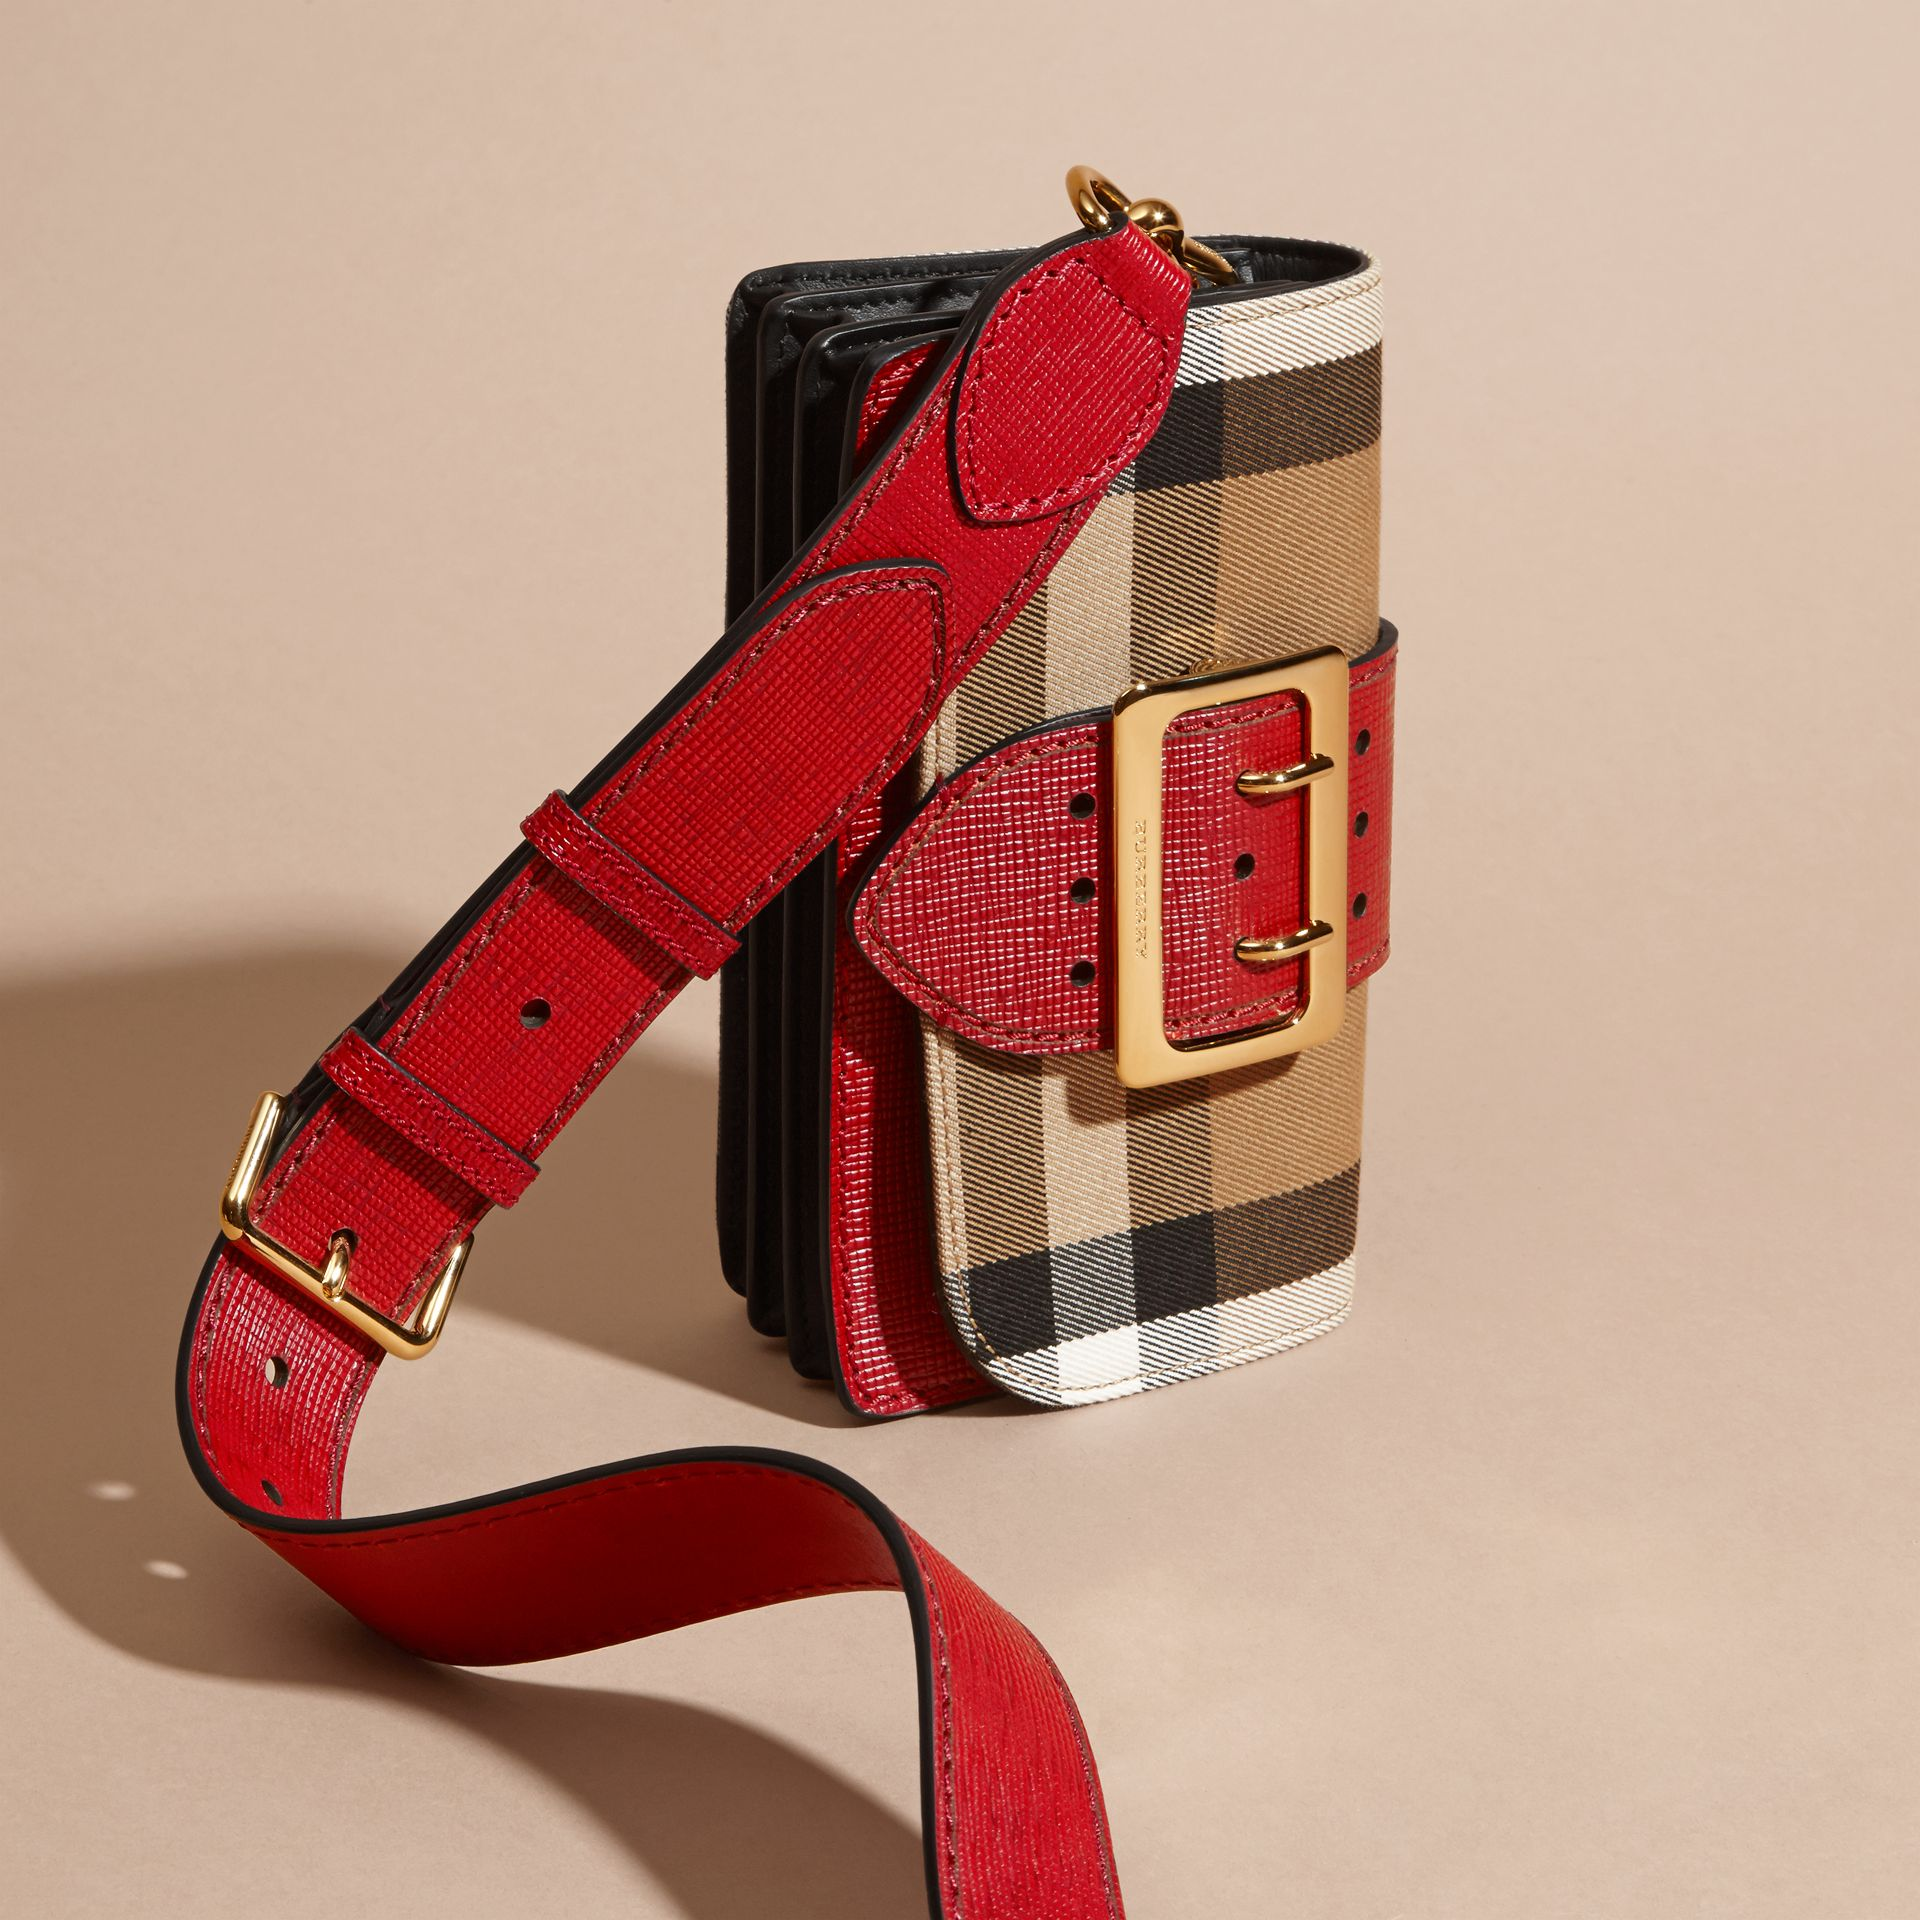 The Small Buckle Bag in House Check and Leather in Military Red/military Red - Women | Burberry United States - gallery image 7